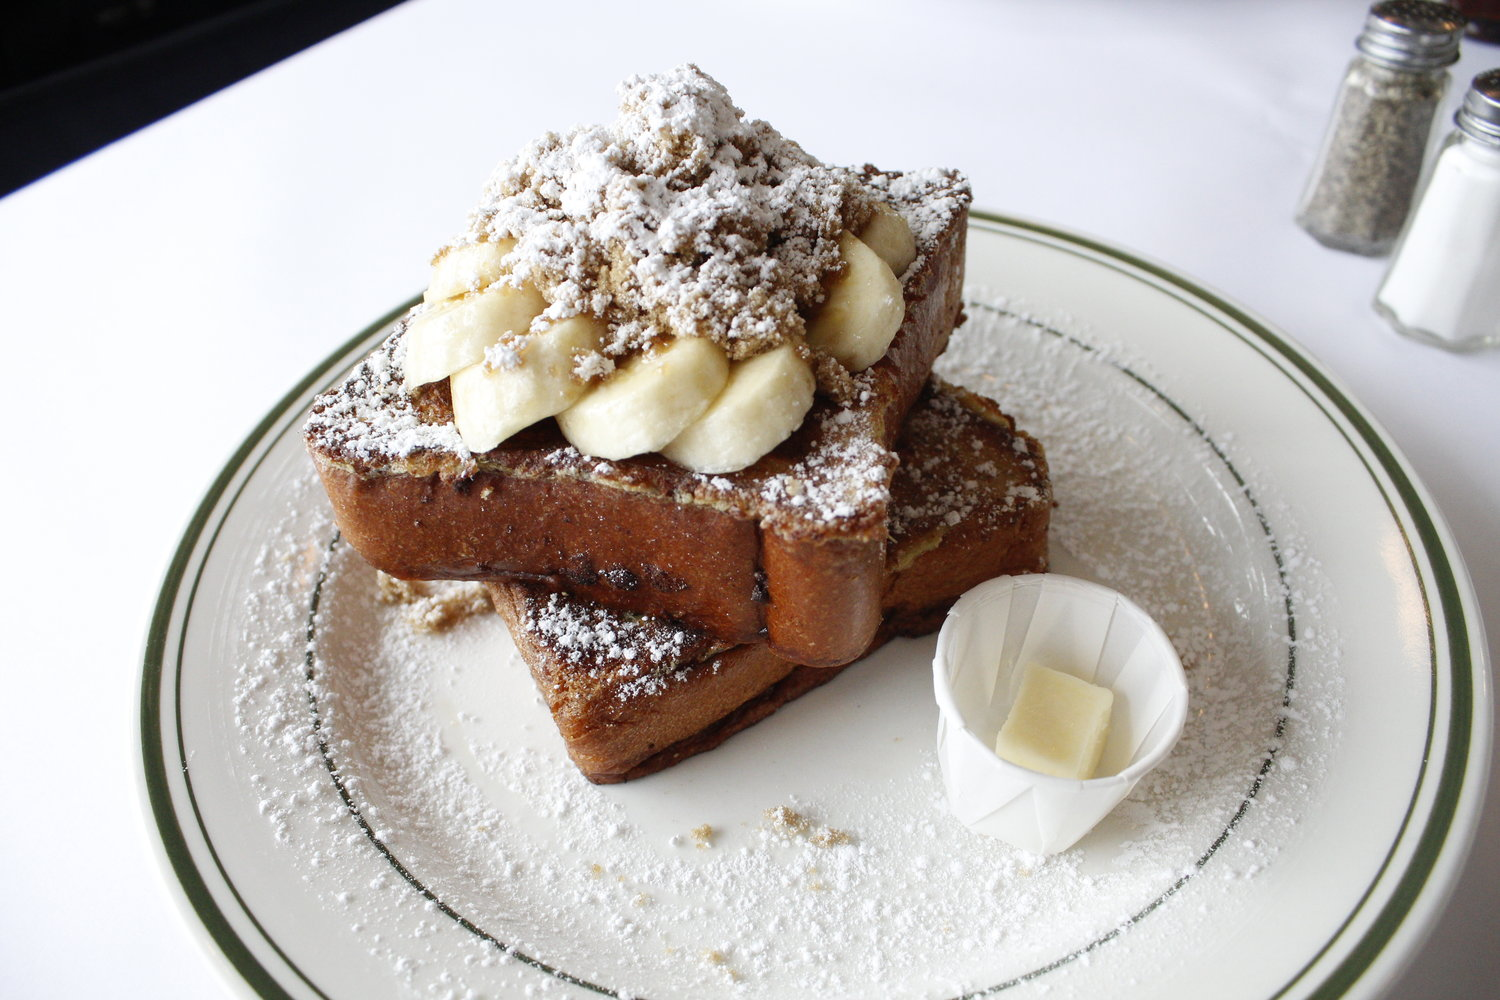 The brioche French toast was one of the best we've had, topped with bananas and brown sugar. (Photo was taken before we drowned it in maple syrup.)